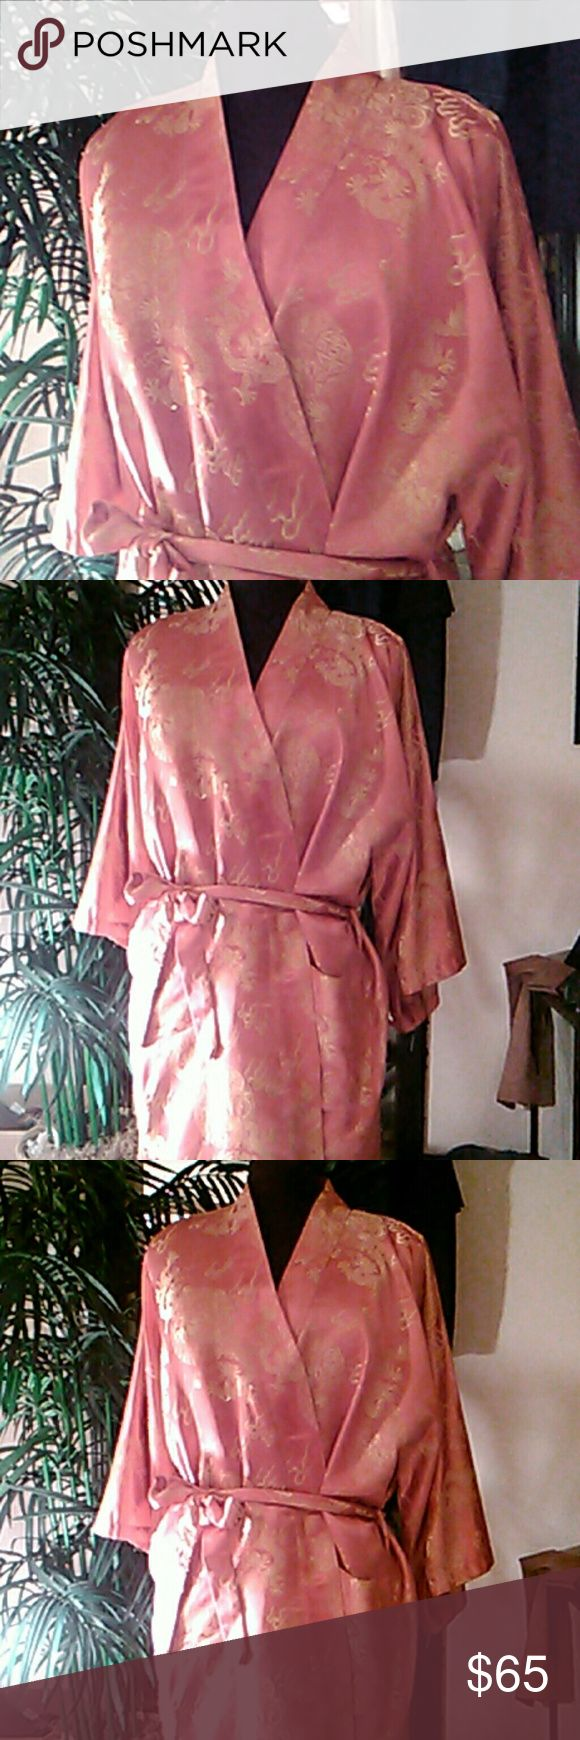 Women's Kimono Short Sexy Robe Pale Pink and Gold Dragons with sash in size OS/Large Intimates & Sleepwear Robes